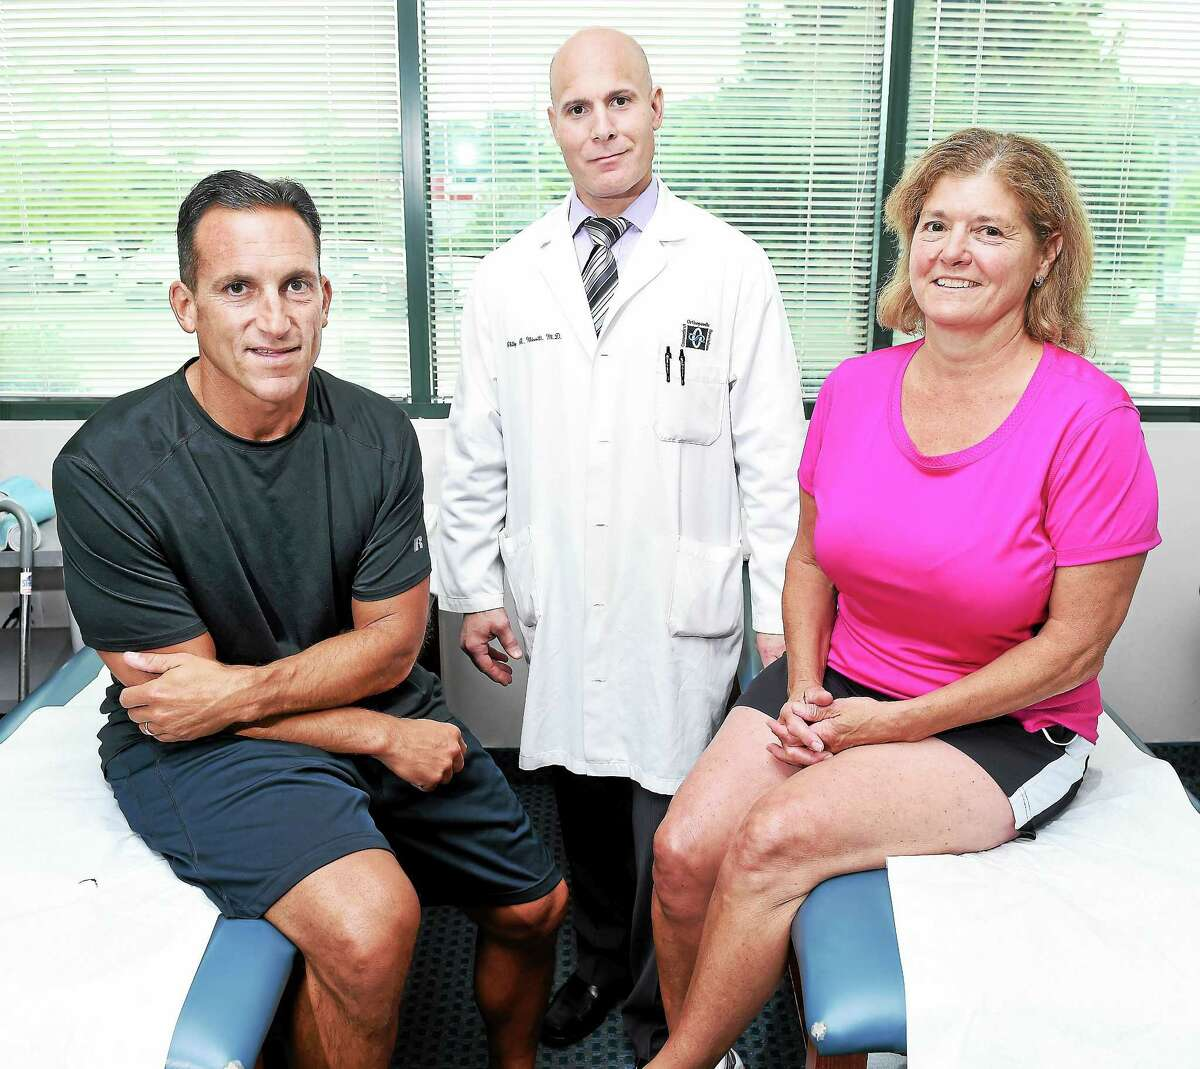 Orthopedic surgeon Dr. Philip Minotti (center) of Connecticut Orthopaedic Specialists is photographed with his patients Anthony Avallone (left) of Guilford and Karen Klarman-Williams of Branford last week. Minotti performed hip replacement surgery on the two.